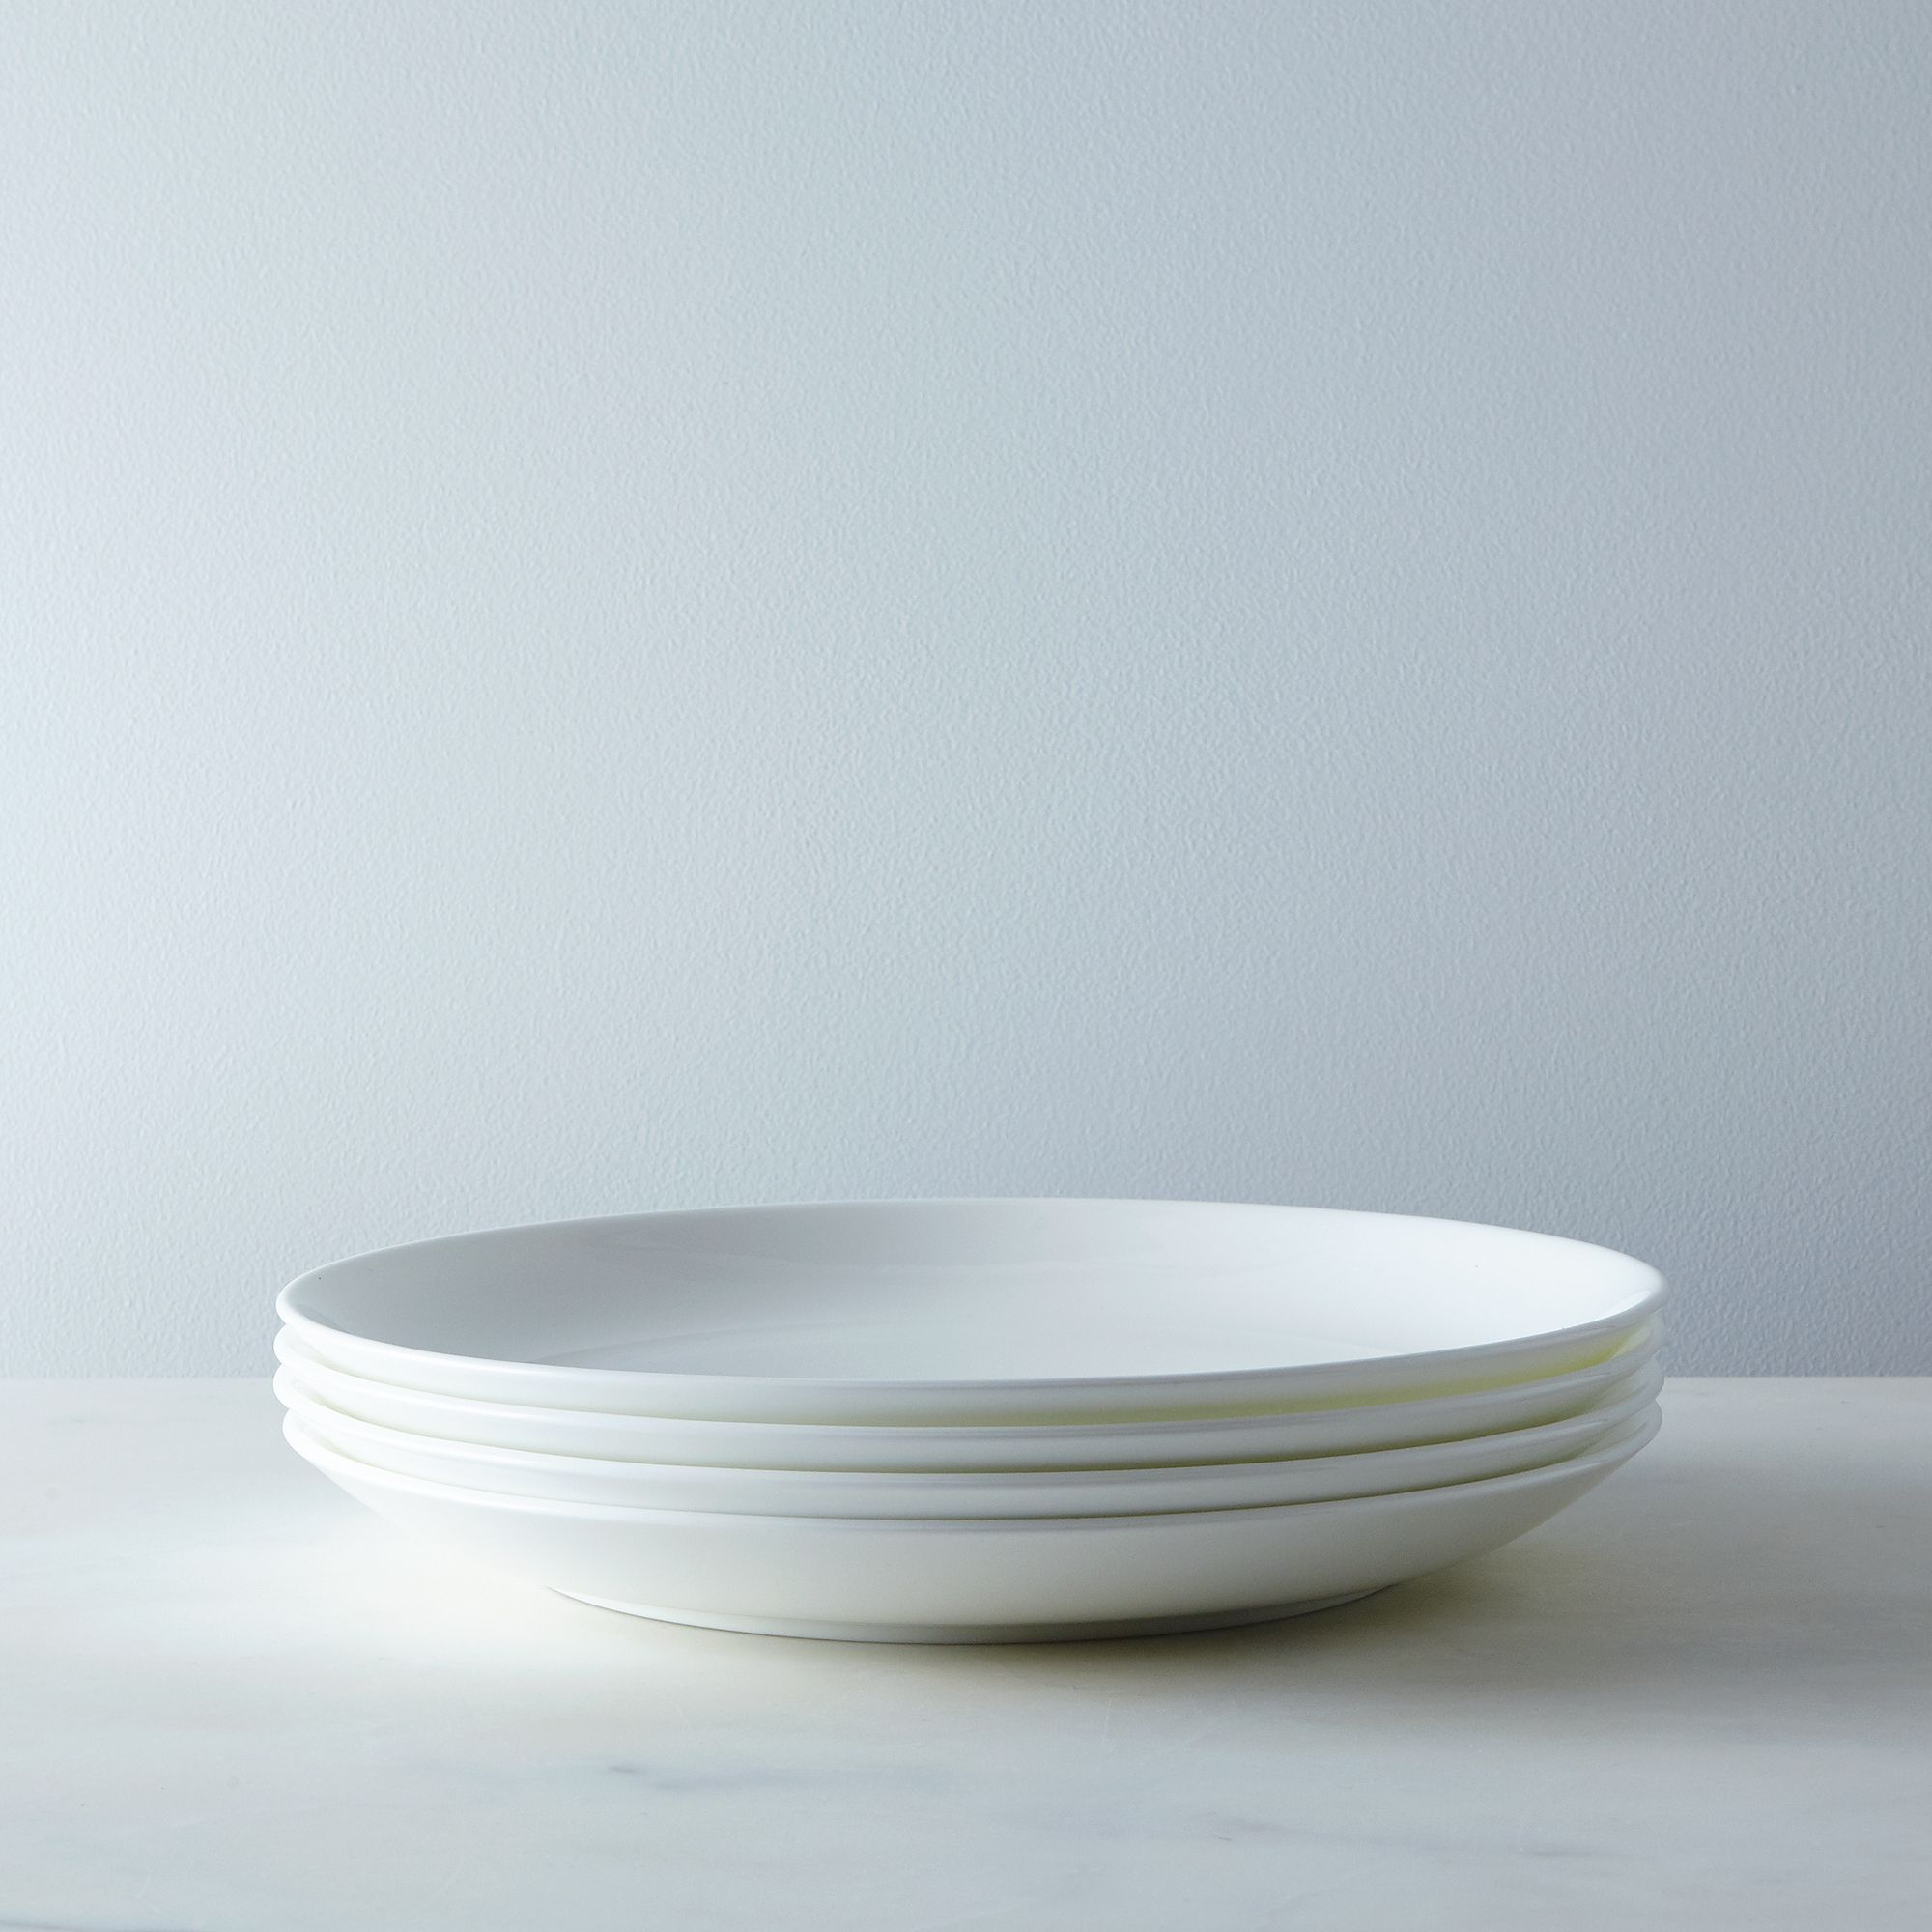 dinnerware by Juliann